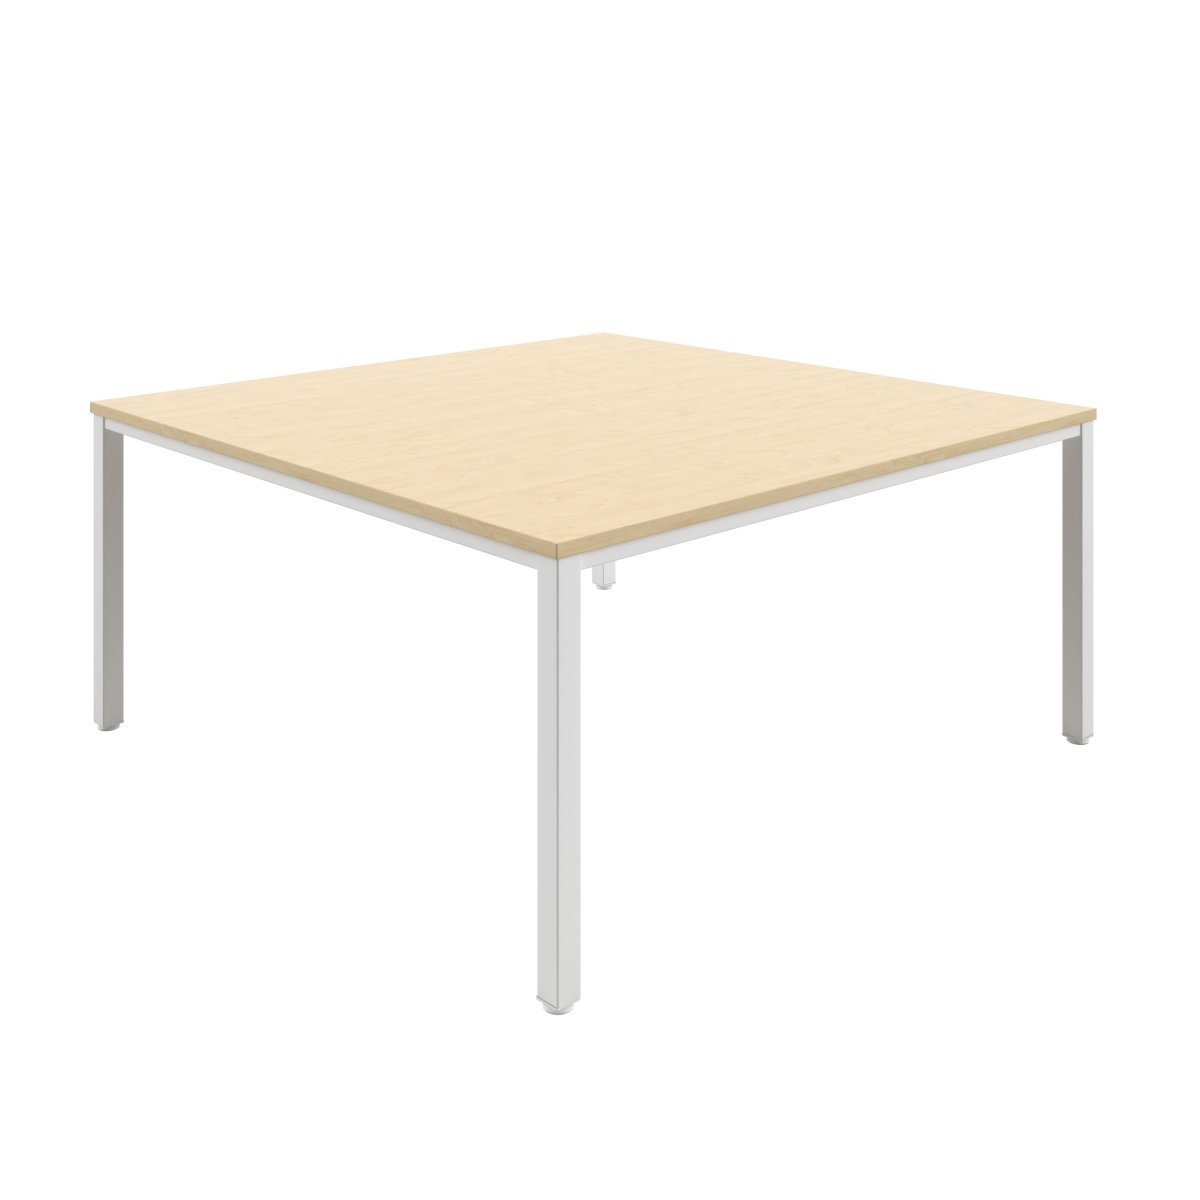 Fraction Infinity 160 X 160 Meeting Table - Maple With White Legs